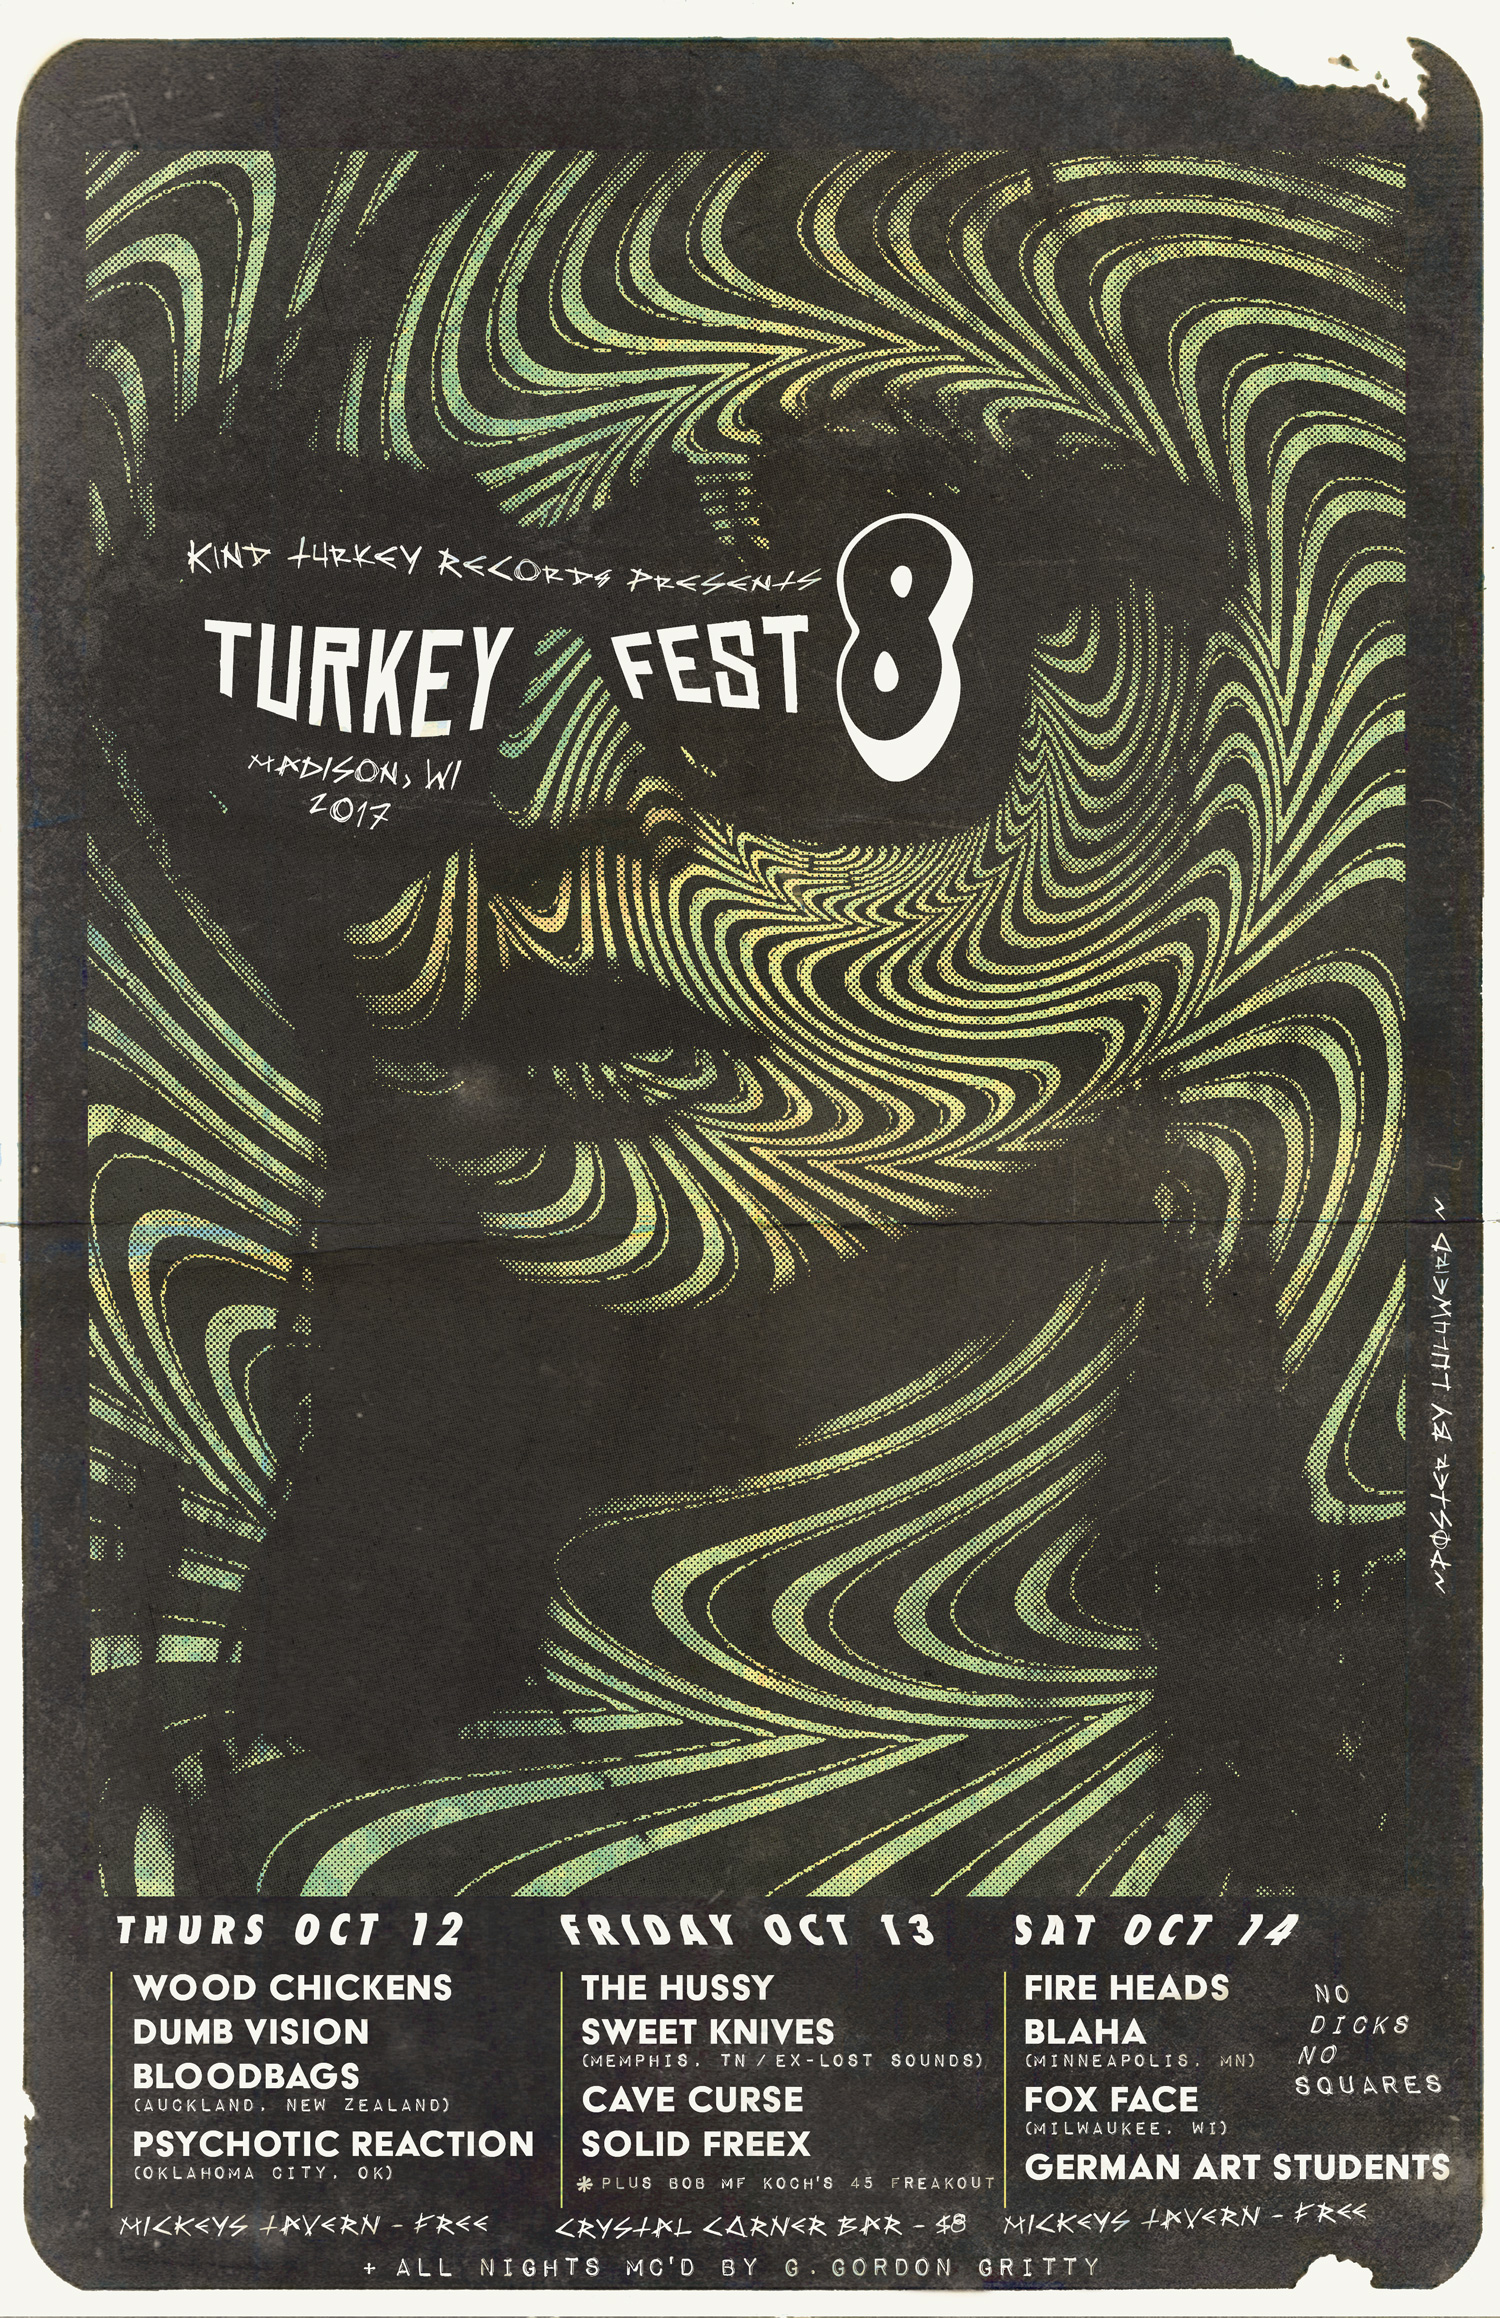 TurkeyFest8-green.jpg